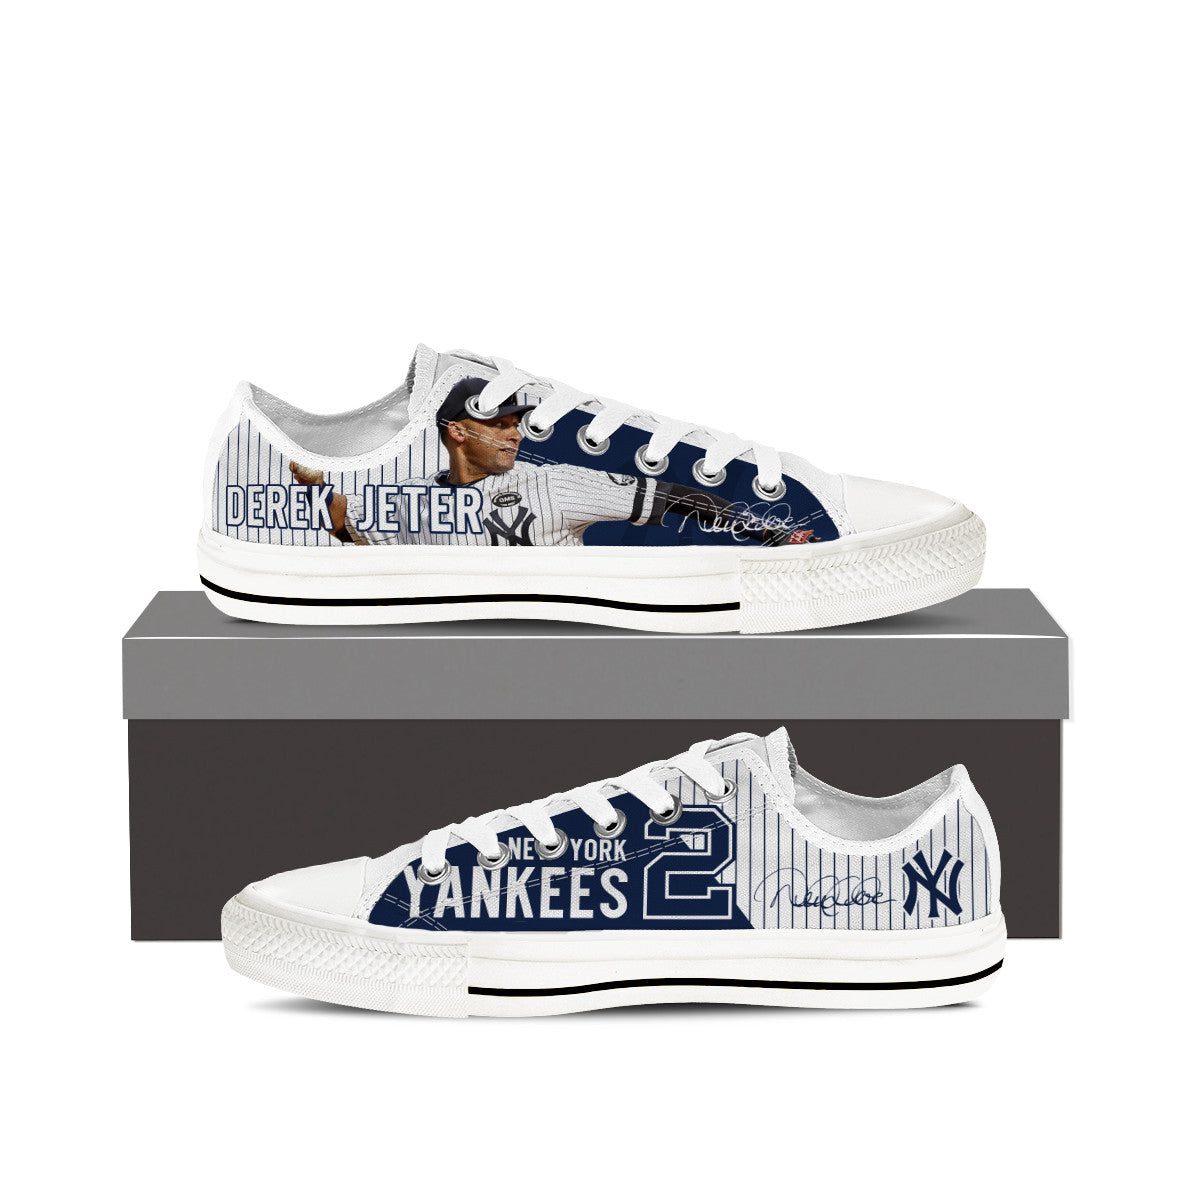 Derek Jeter - Mens (White)